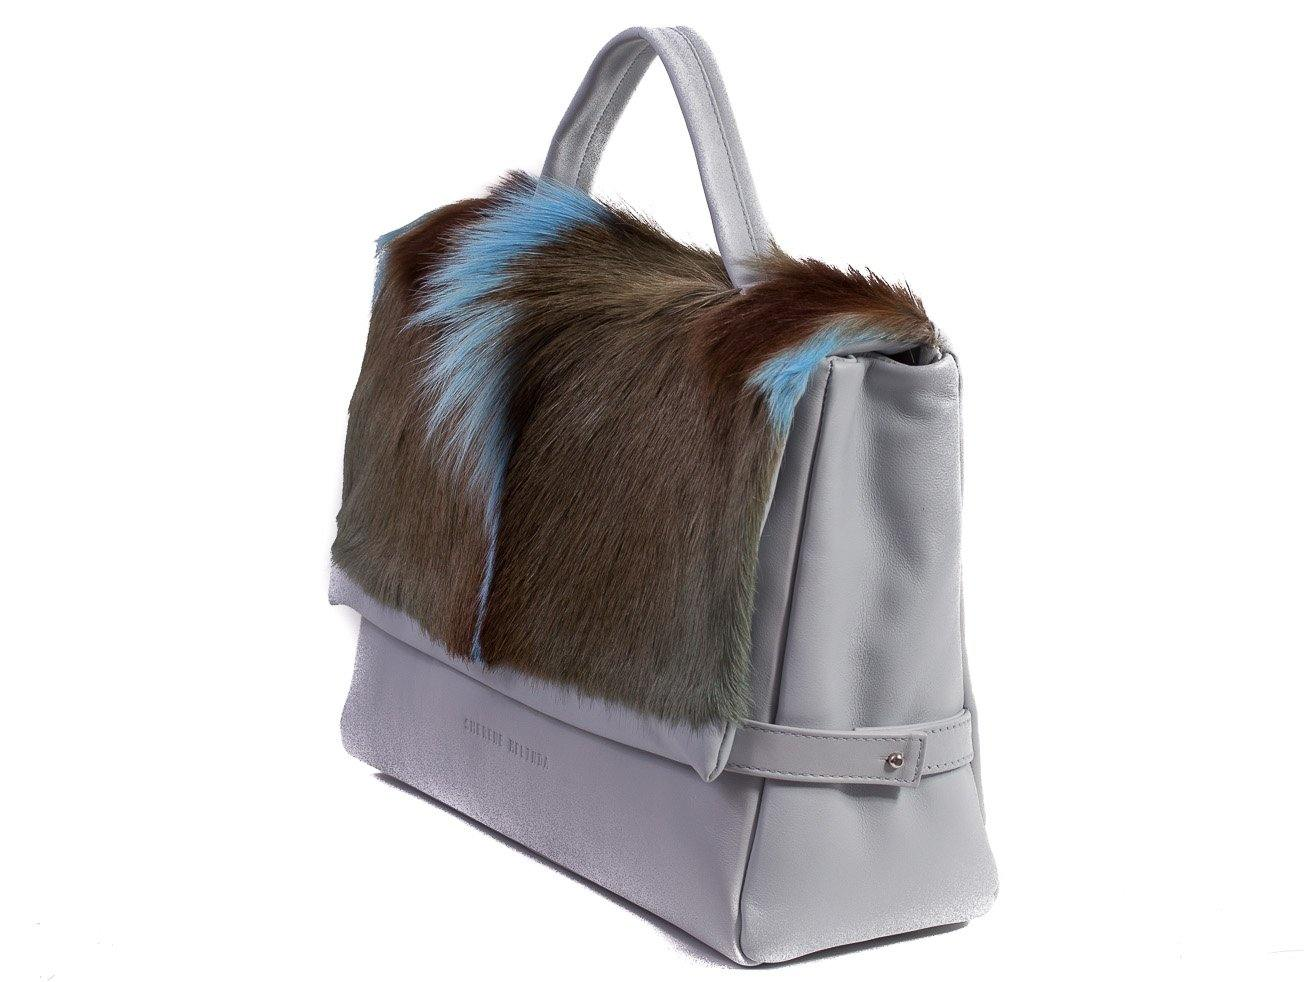 Sherene Melinda Baby Blue Leather Tote Bag With A Fan